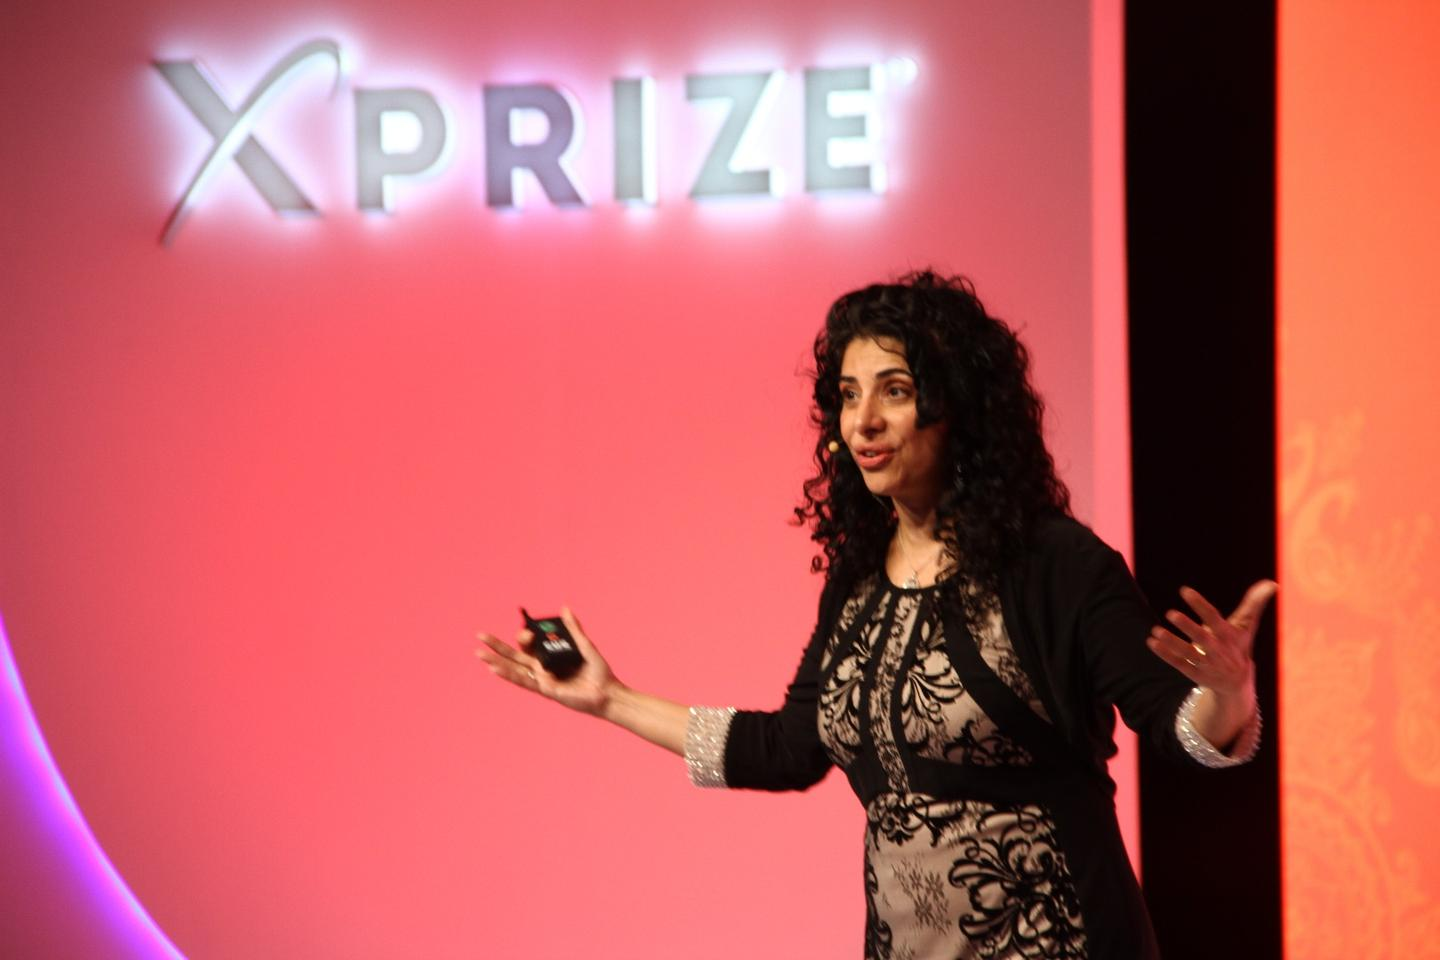 The Water Abundance XPrize is just the foundation's first step in tackling water security, according to Zenia Tata